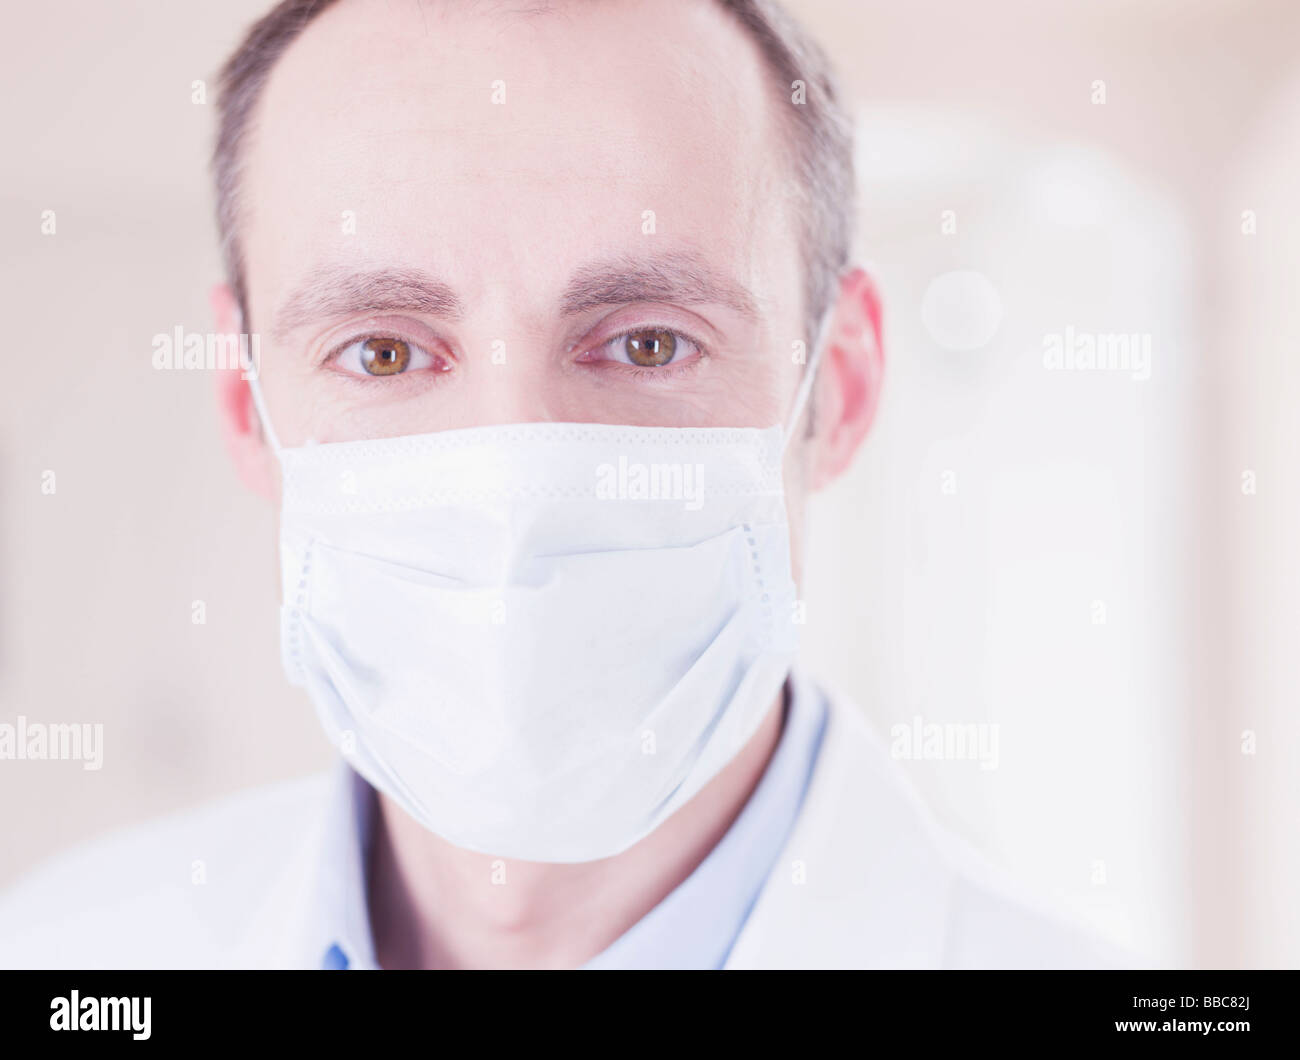 medic with face mask looking at viewer - Stock Image